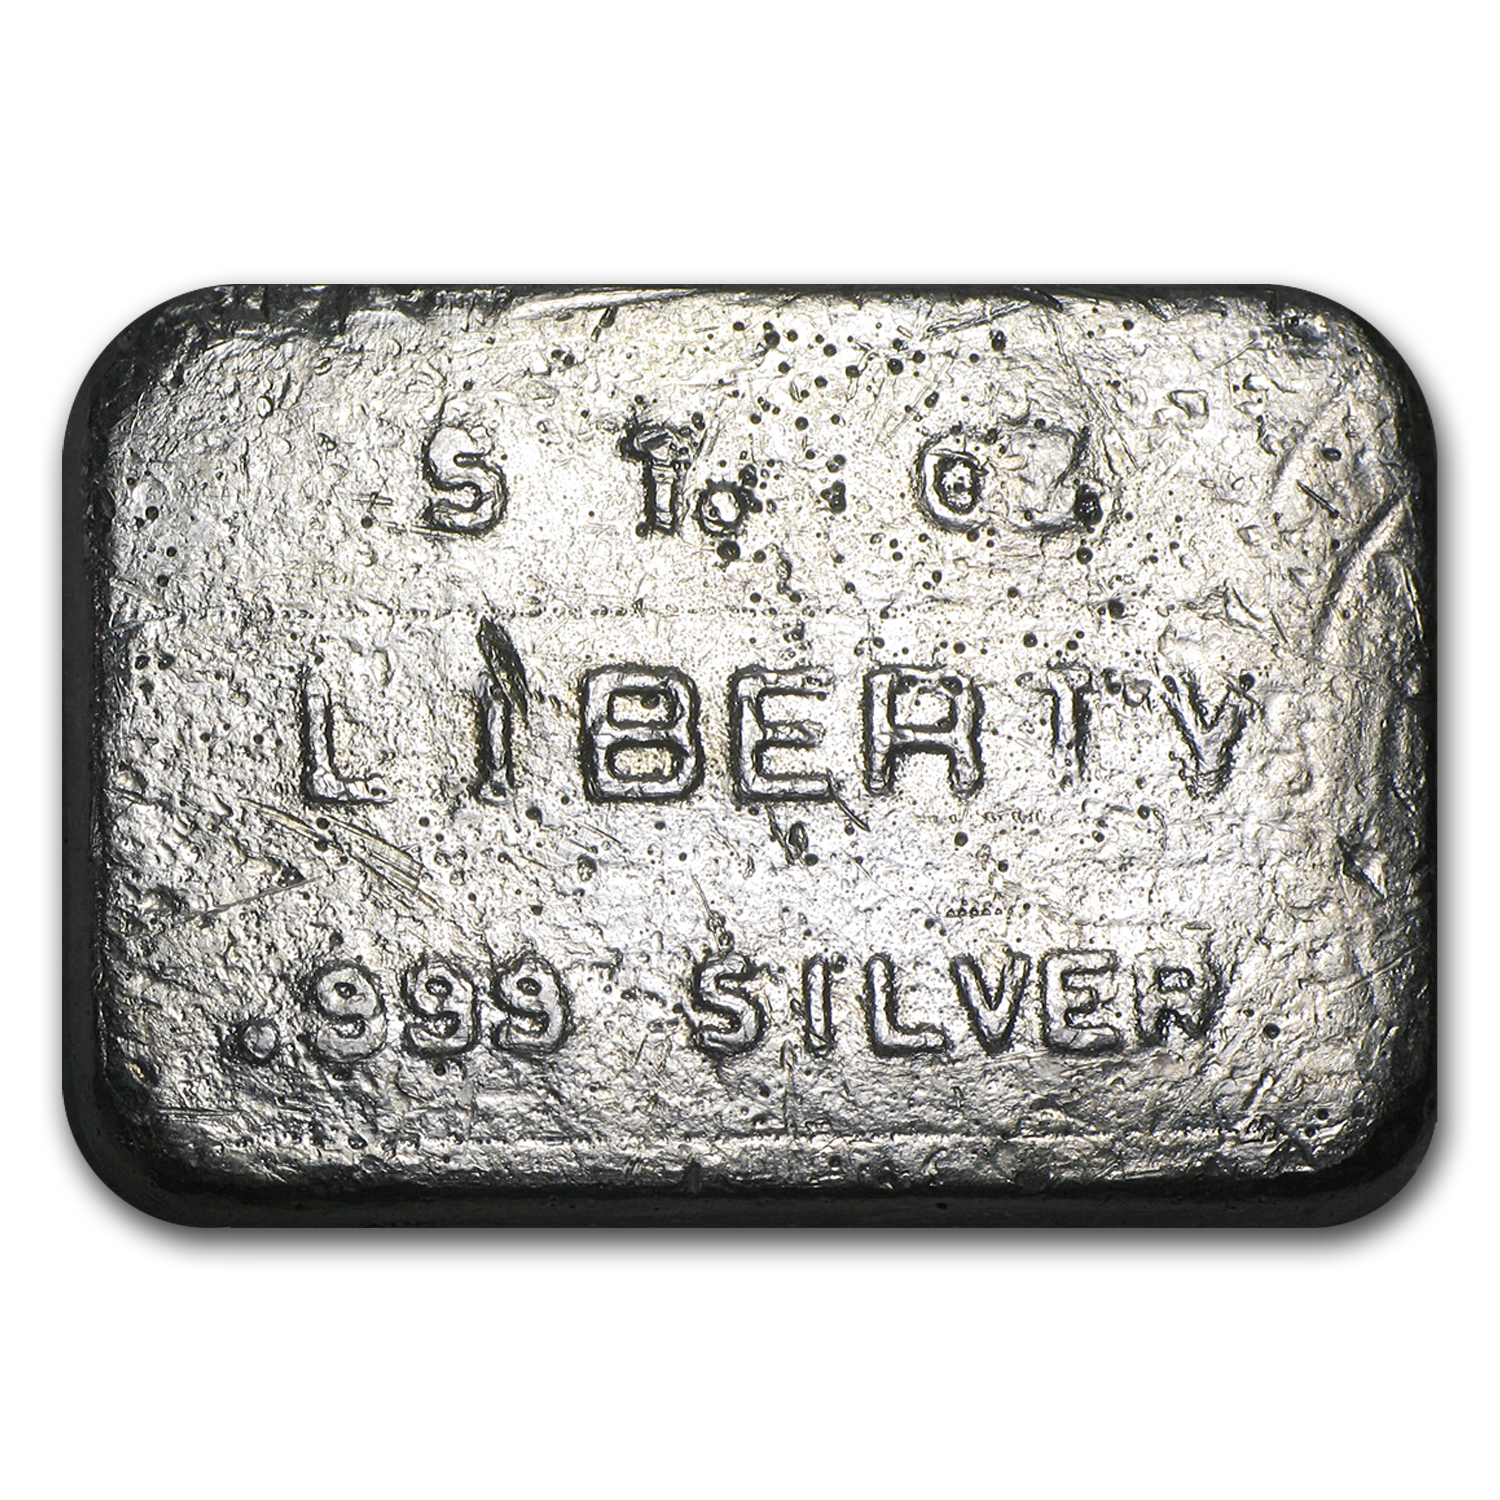 5 oz Silver Bar - Liberty